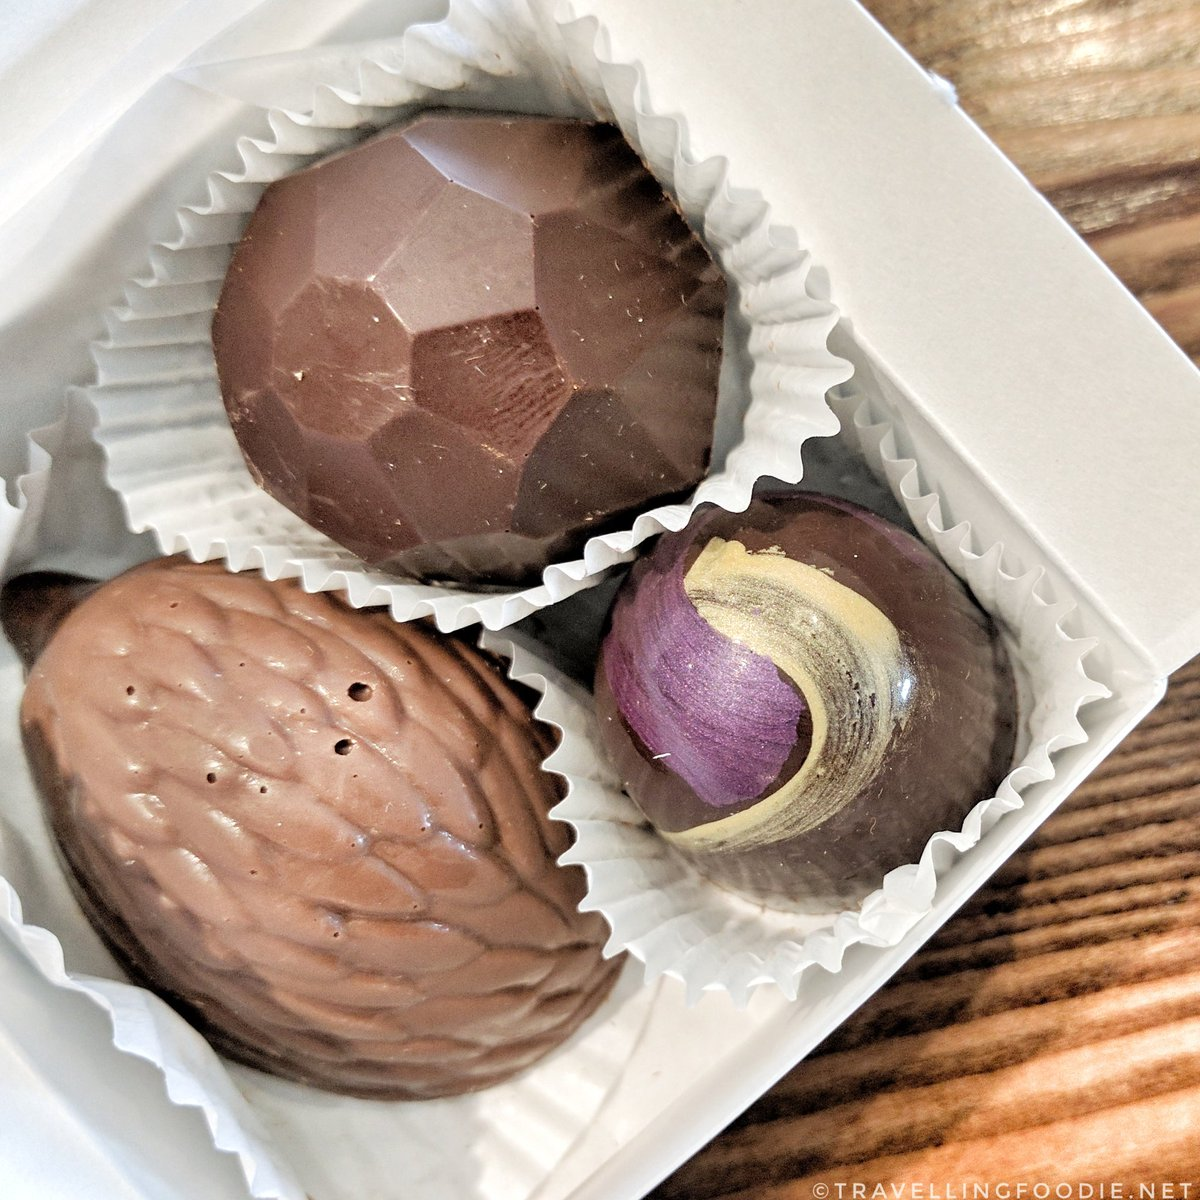 Savour Stratford Chocolate Trail: Chocolate Barr's Candies - icewine, lavender and hazelnut truffles